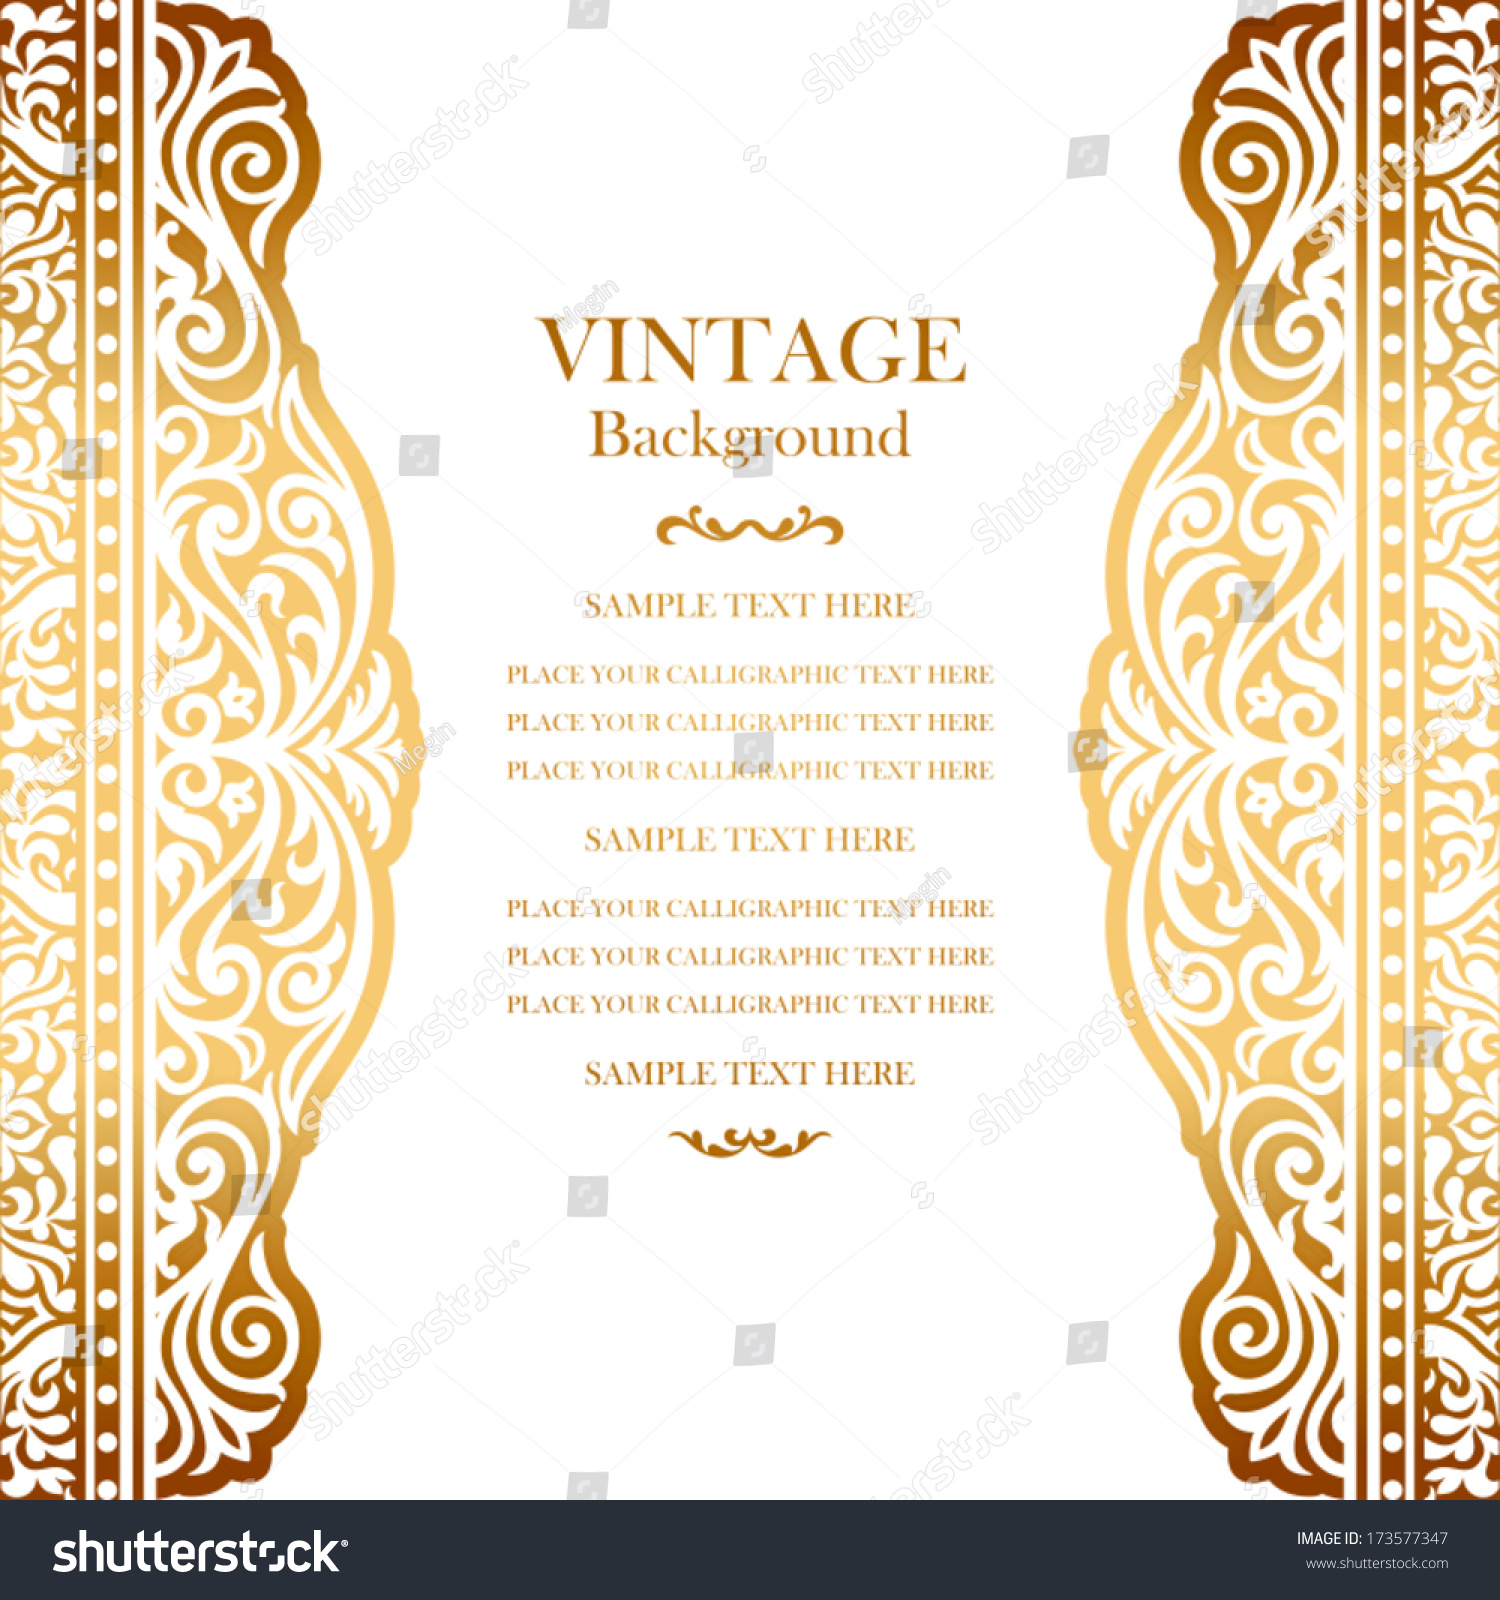 Book Cover Design Elegant : Vintage gold background design elegant book stock vector